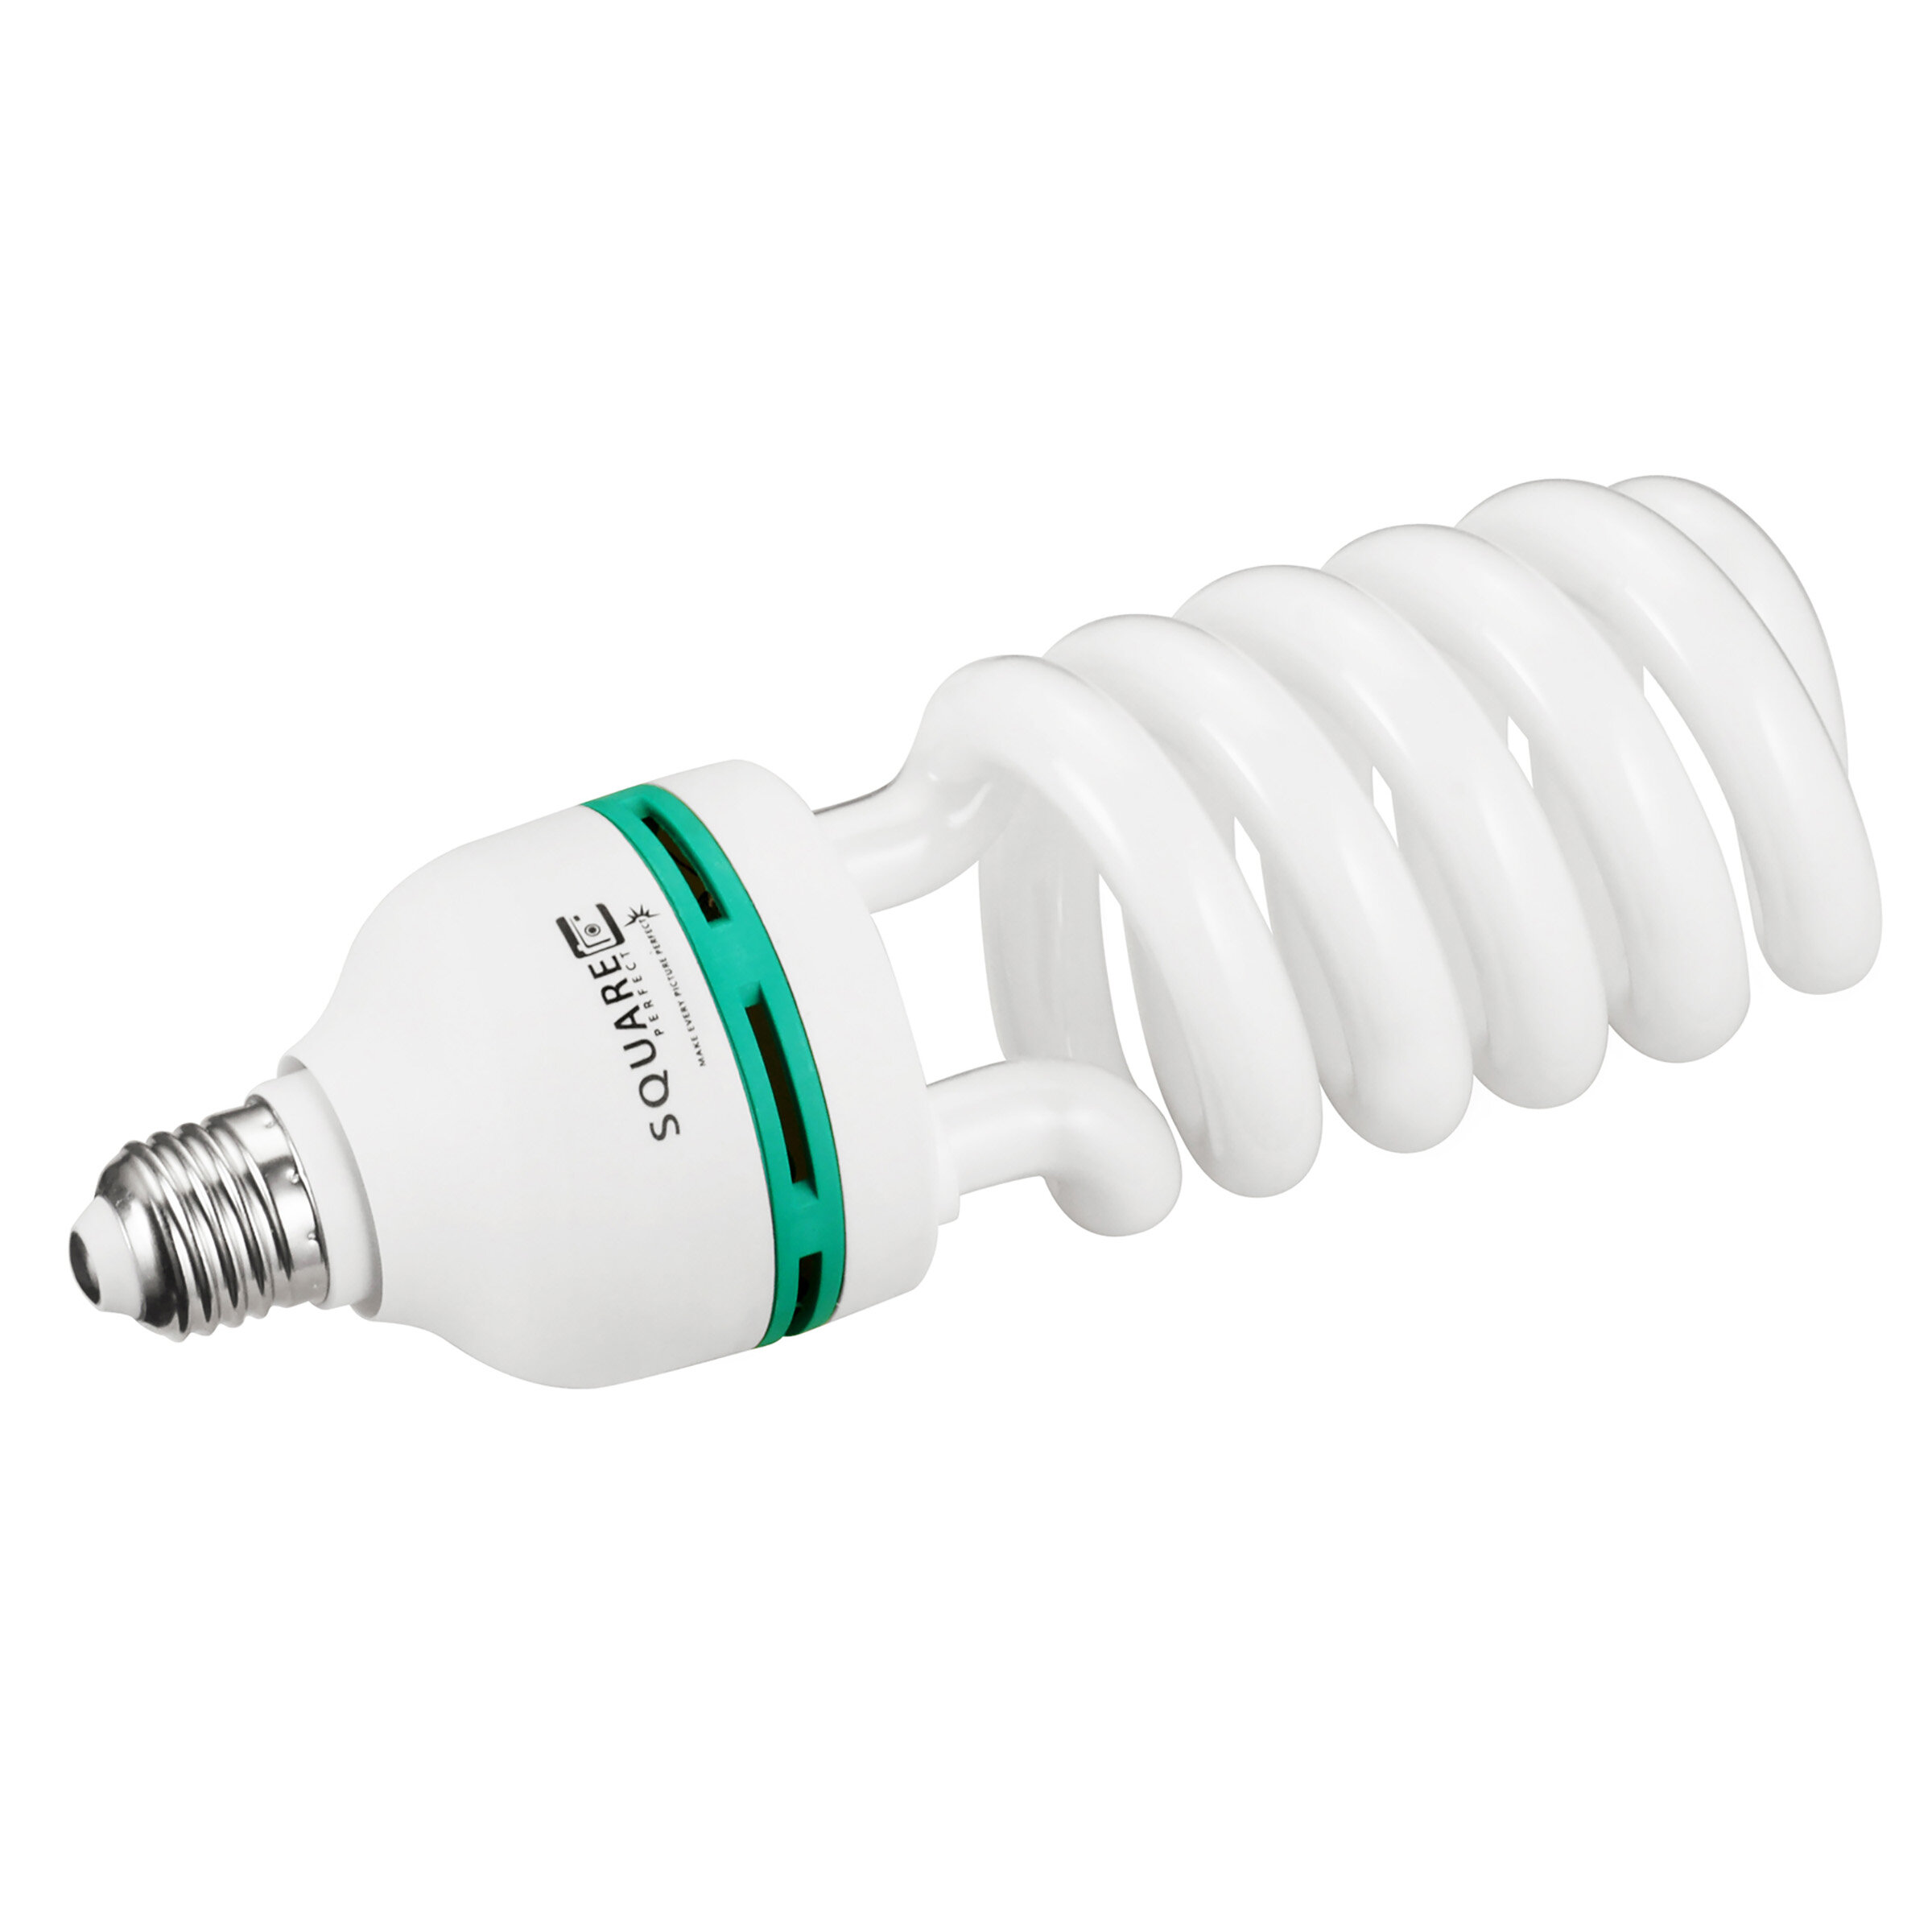 D630605 65w Cfl Spiral Full Spectrum Light Bulb